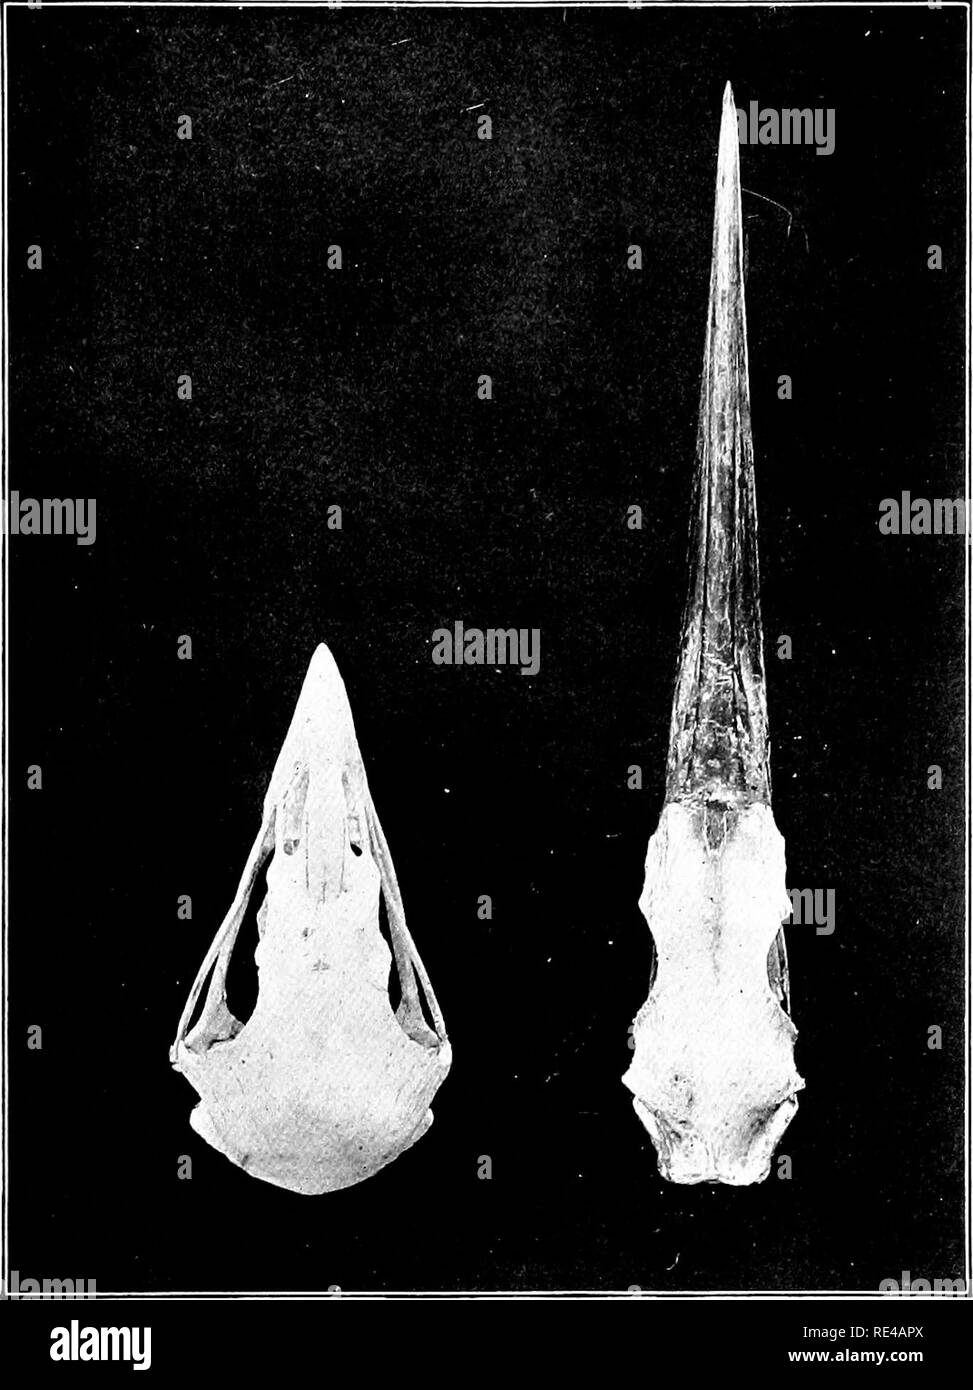 . The bird, its form and function. Birds. Muscles and Nerves 199 When we carefully remove the upper part of a bird's skull, we find that the brain occupies the whole interior,. Fig. 145.—Comparison of skulls of Heron and Hawk, showing unlikeness caused by difference in manner of procvning food. the shell or box of bone which protects it being very thin, although strong. It would be ver}- interesting if we could compare the short and thick bullet-shaped skull and brain. Please note that these images are extracted from scanned page images that may have been digitally enhanced for readability - c - Stock Image